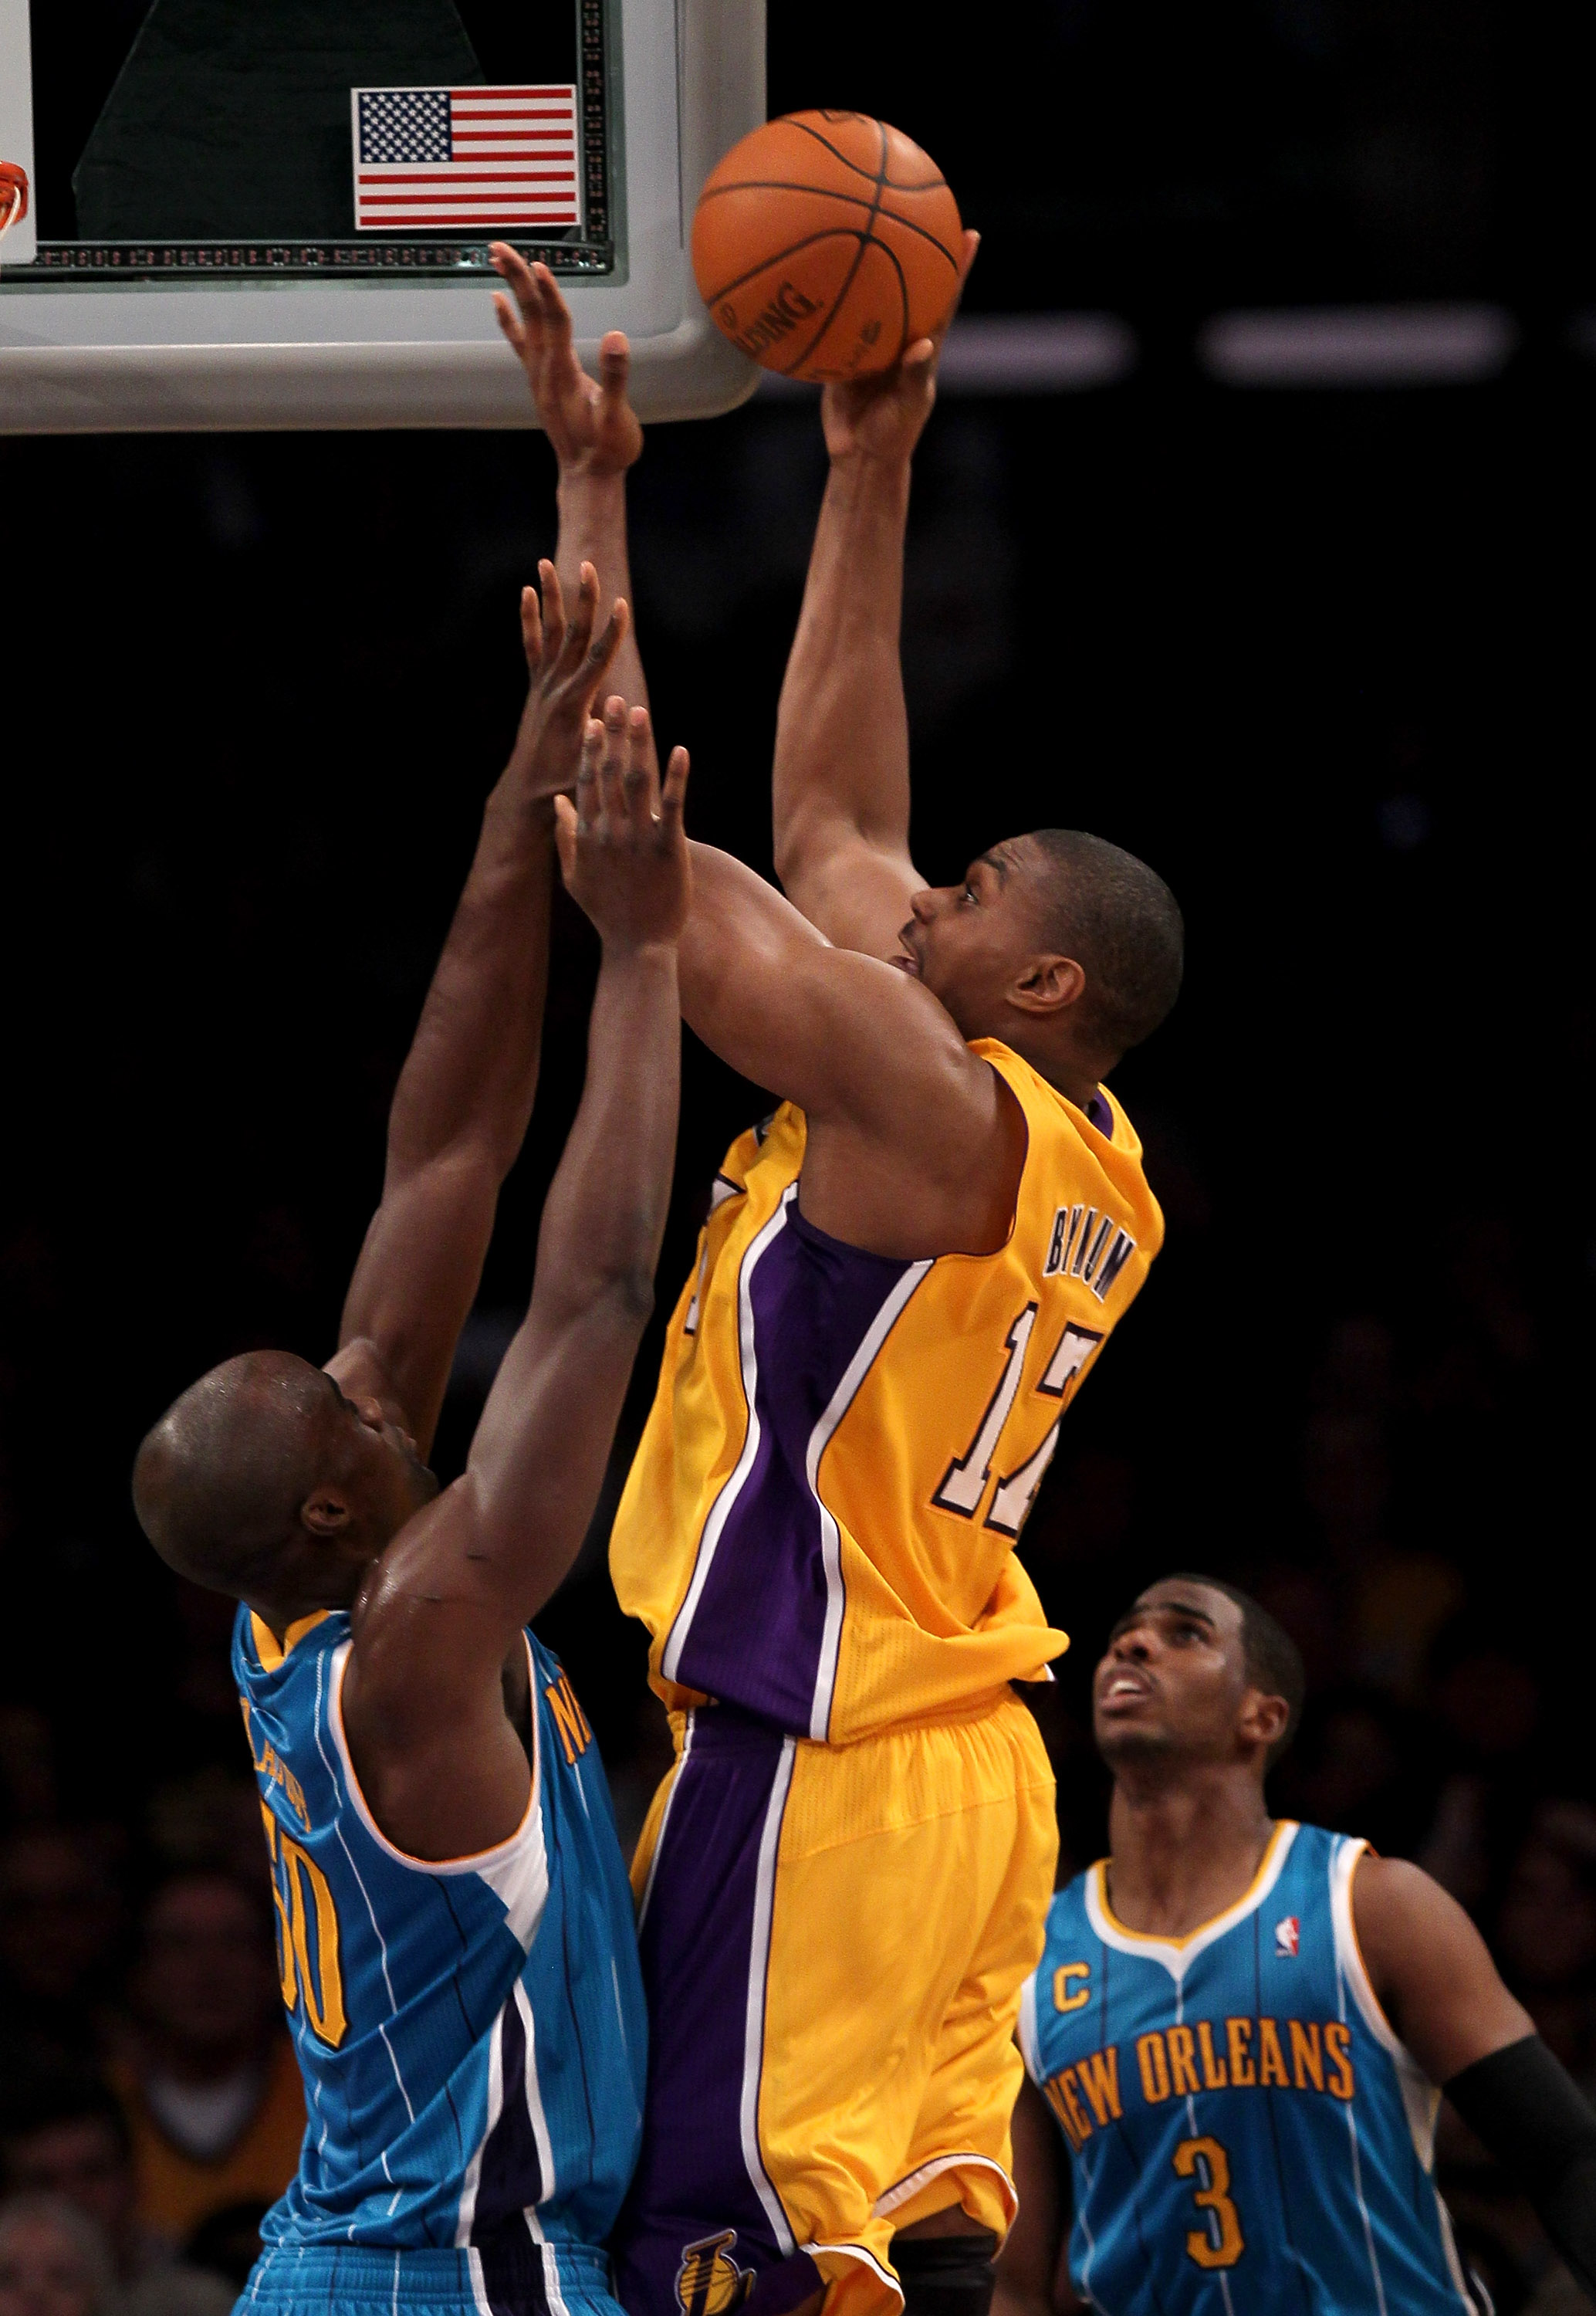 LOS ANGELES, CA - JANUARY 07:  Andrew Bynum #17 of the Los Angeles Lakers shoots over Emeka Okafor #50 of the New Orleans Hornets at Staples Center on January 7, 2011 in Los Angeles, California. The Lakers won 101-97.  NOTE TO USER: User expressly acknowl